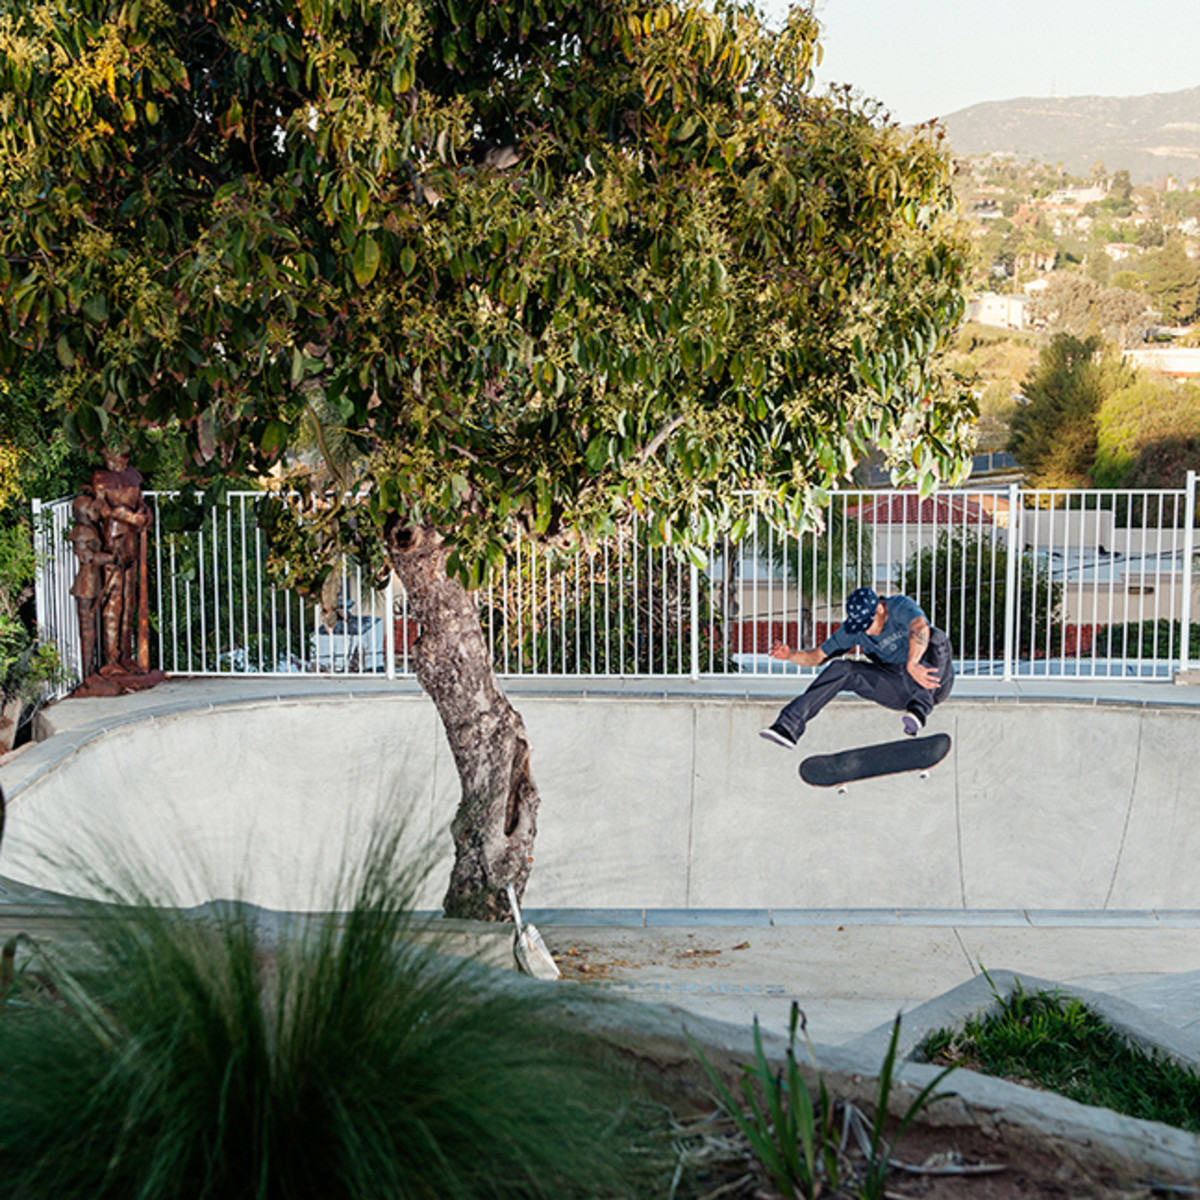 5 Backyard Skateparks Built For Pro Skaters